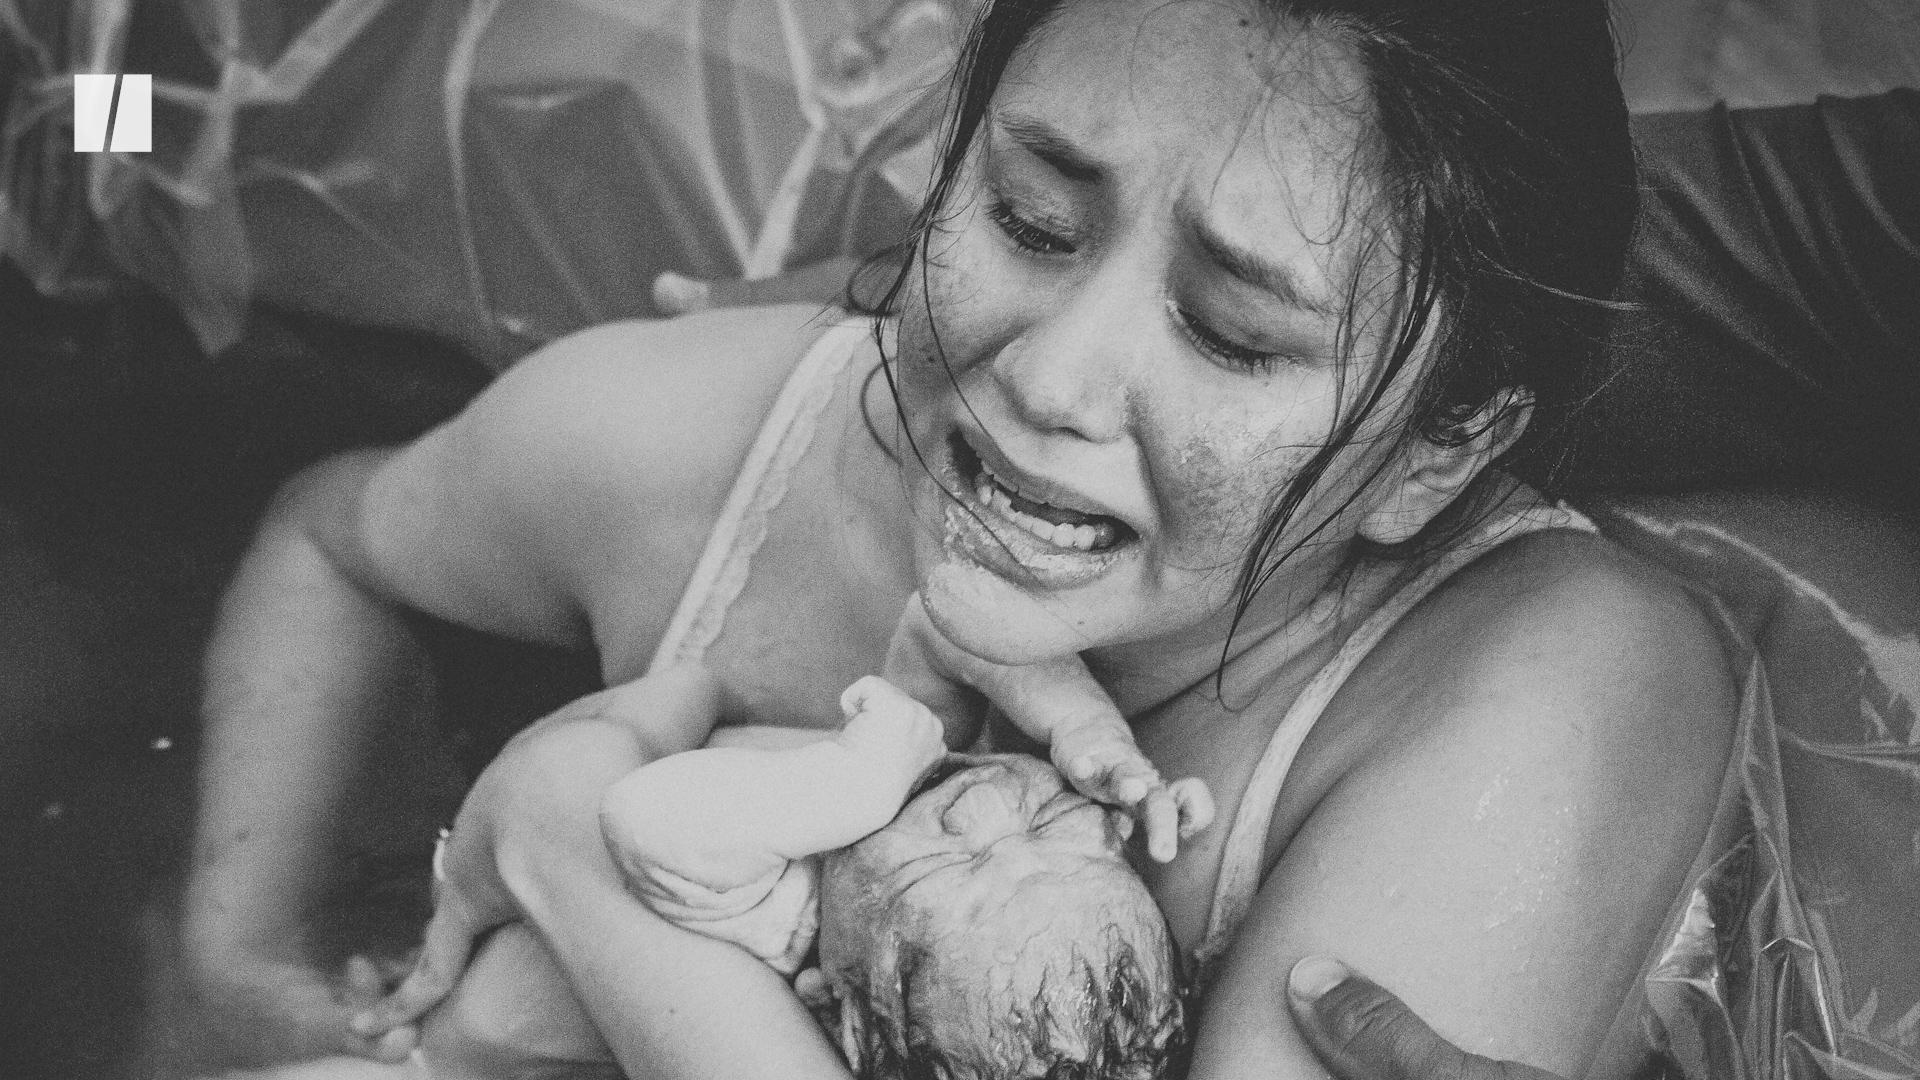 'Life After Birth' Photo Exhibit Shows What Giving Birth Is Actually Like